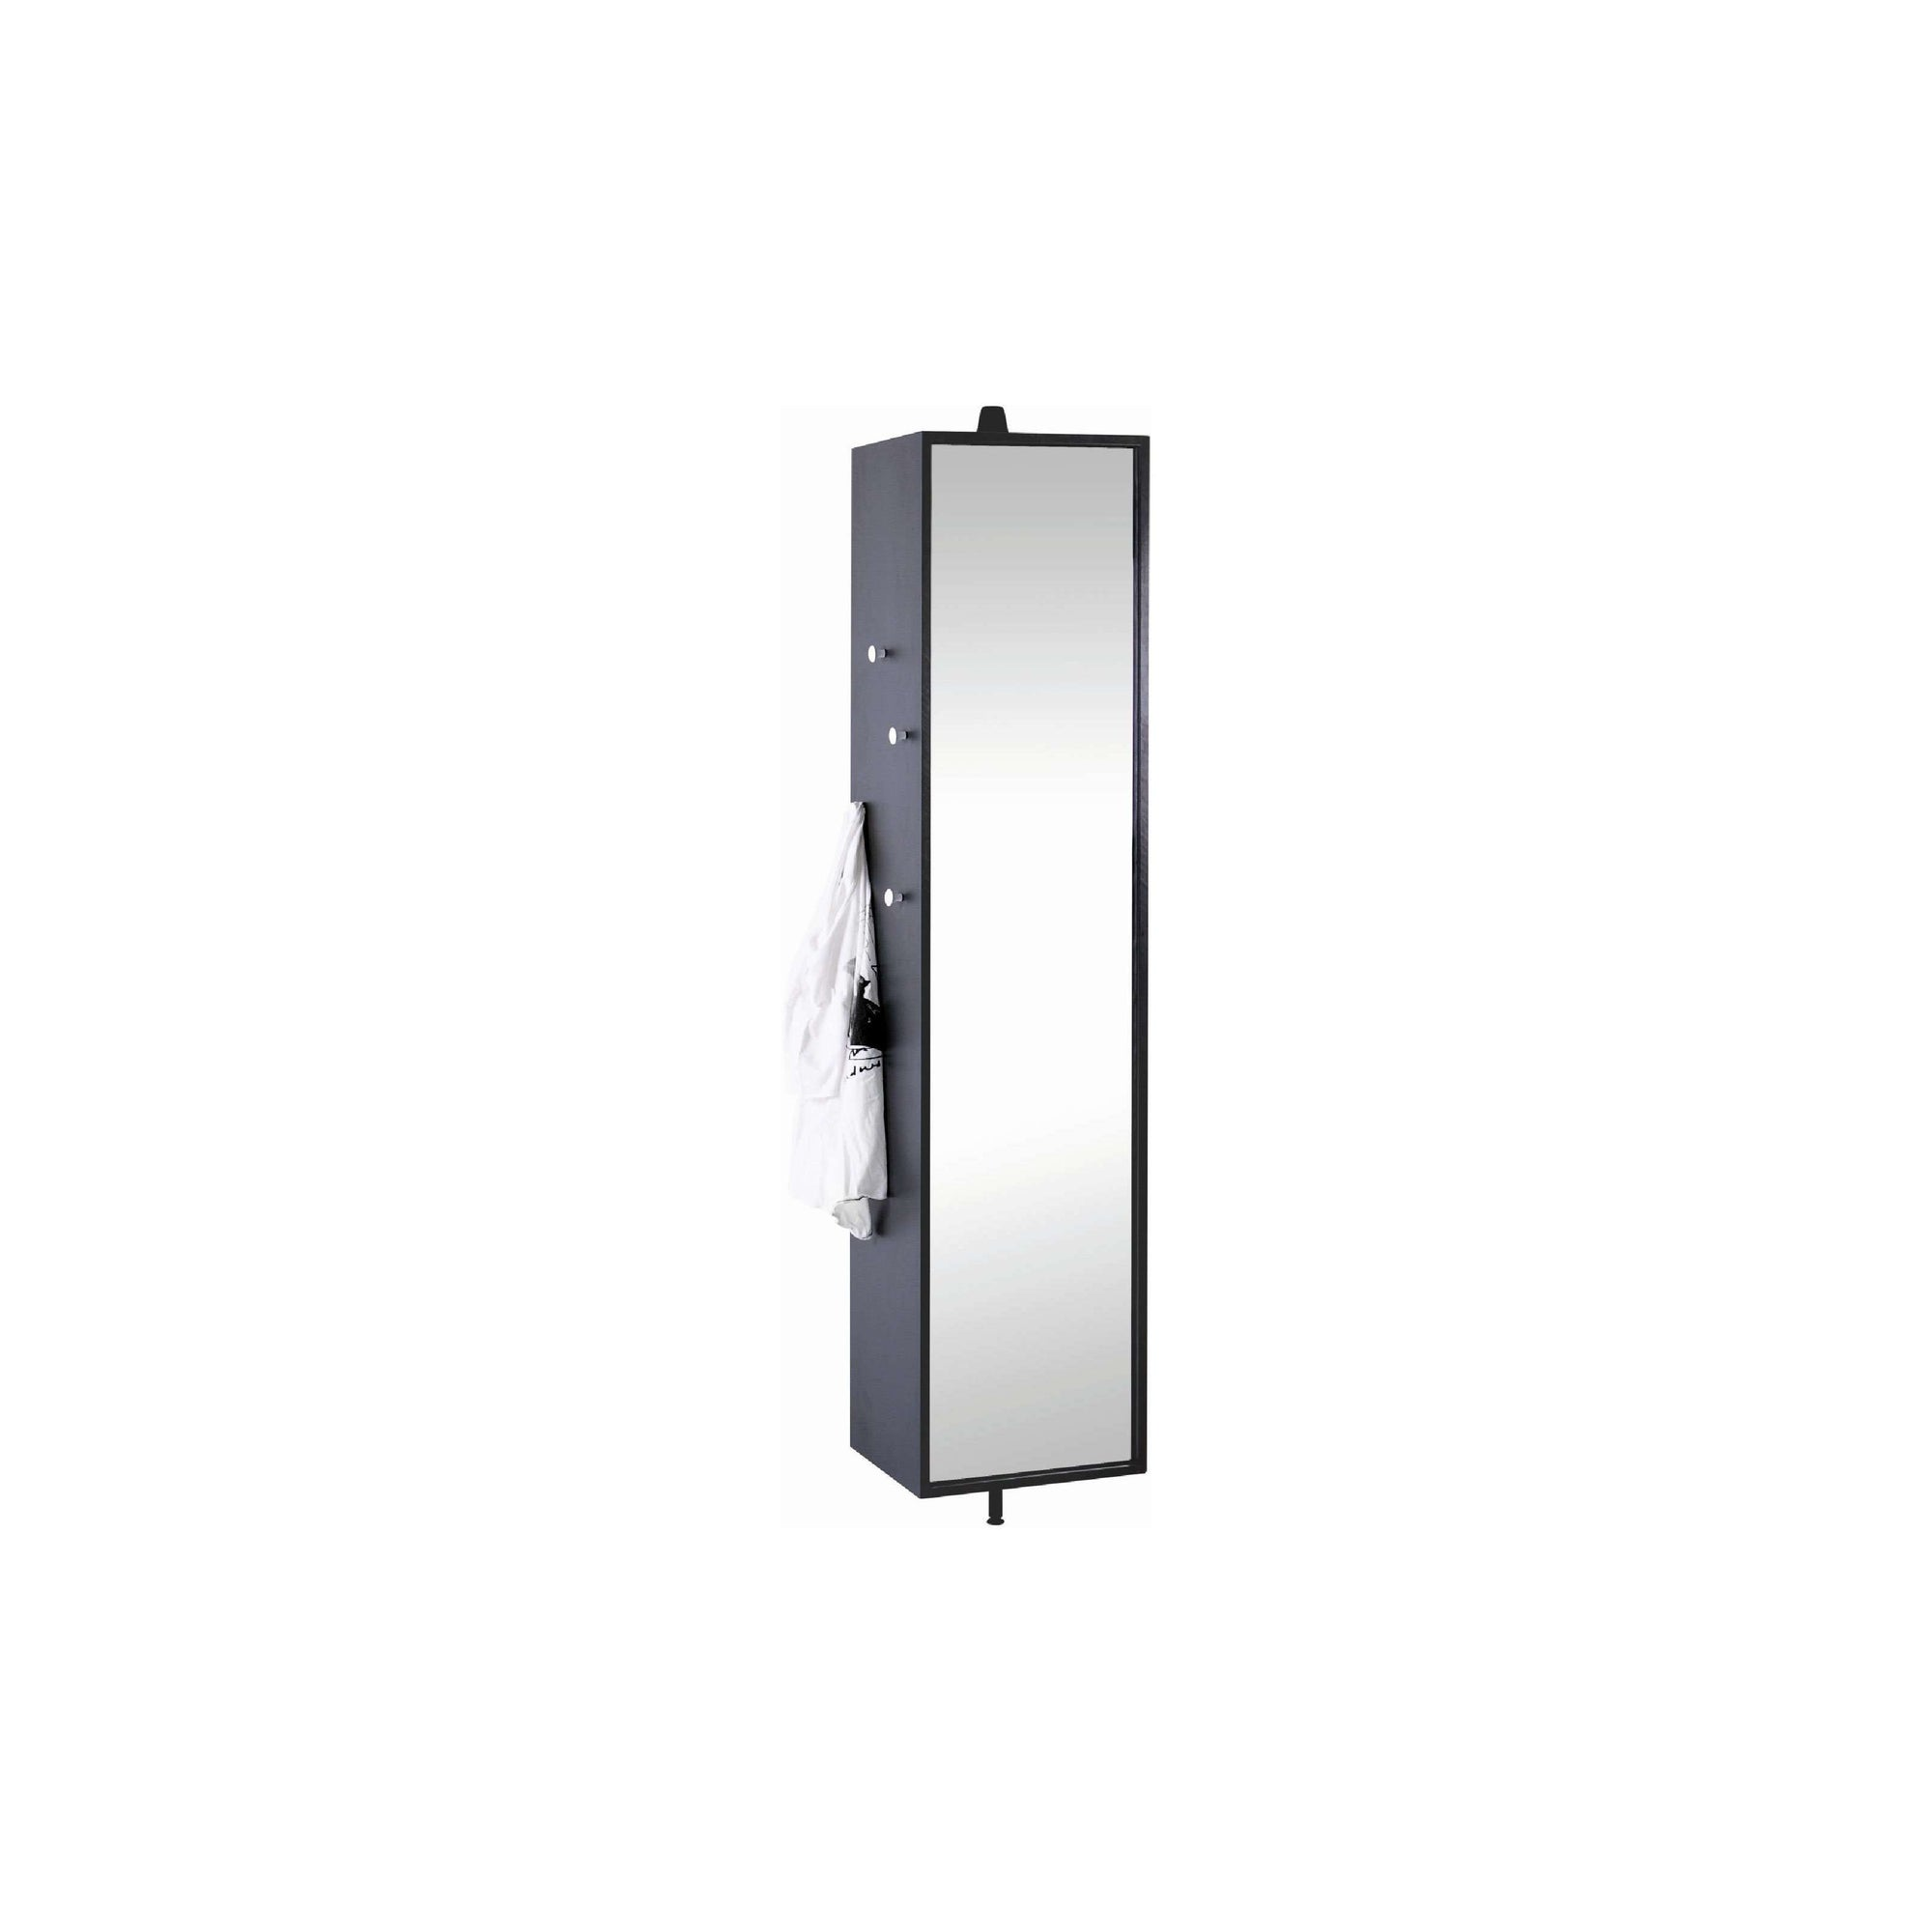 FELIPE Shoe Cabinet With Mirror In Charcoal Grey Lacquered